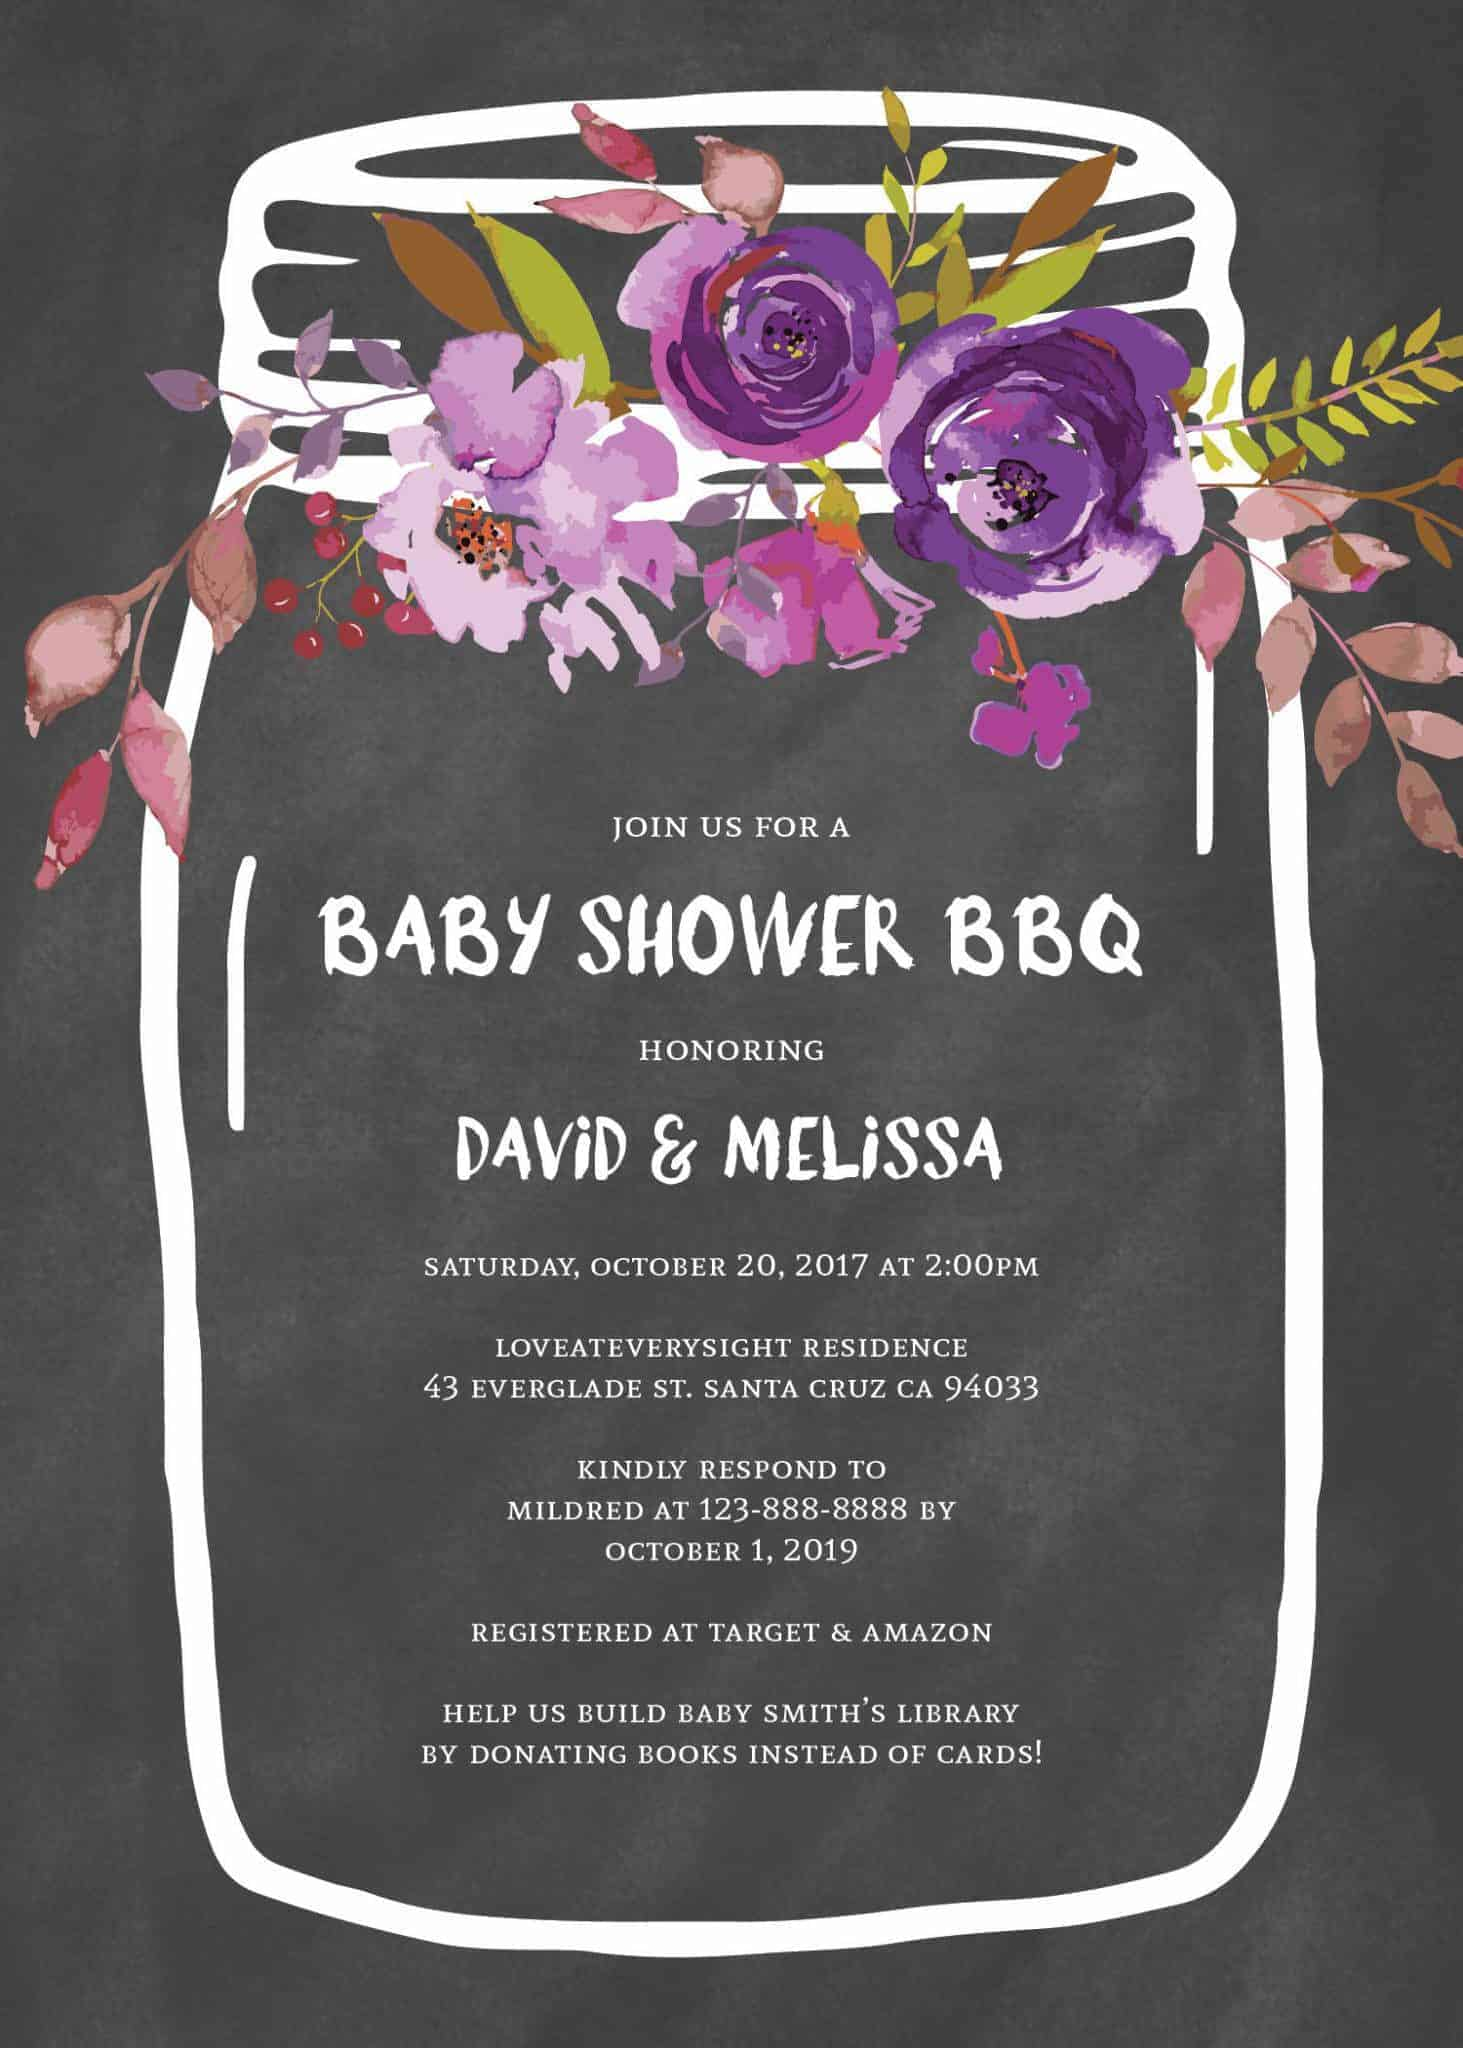 Rustic Baby Shower BBQ, BBQ Baby Shower, Couple Baby Shower Invitation Cards, Mason Jars Baby Shower babyshower68